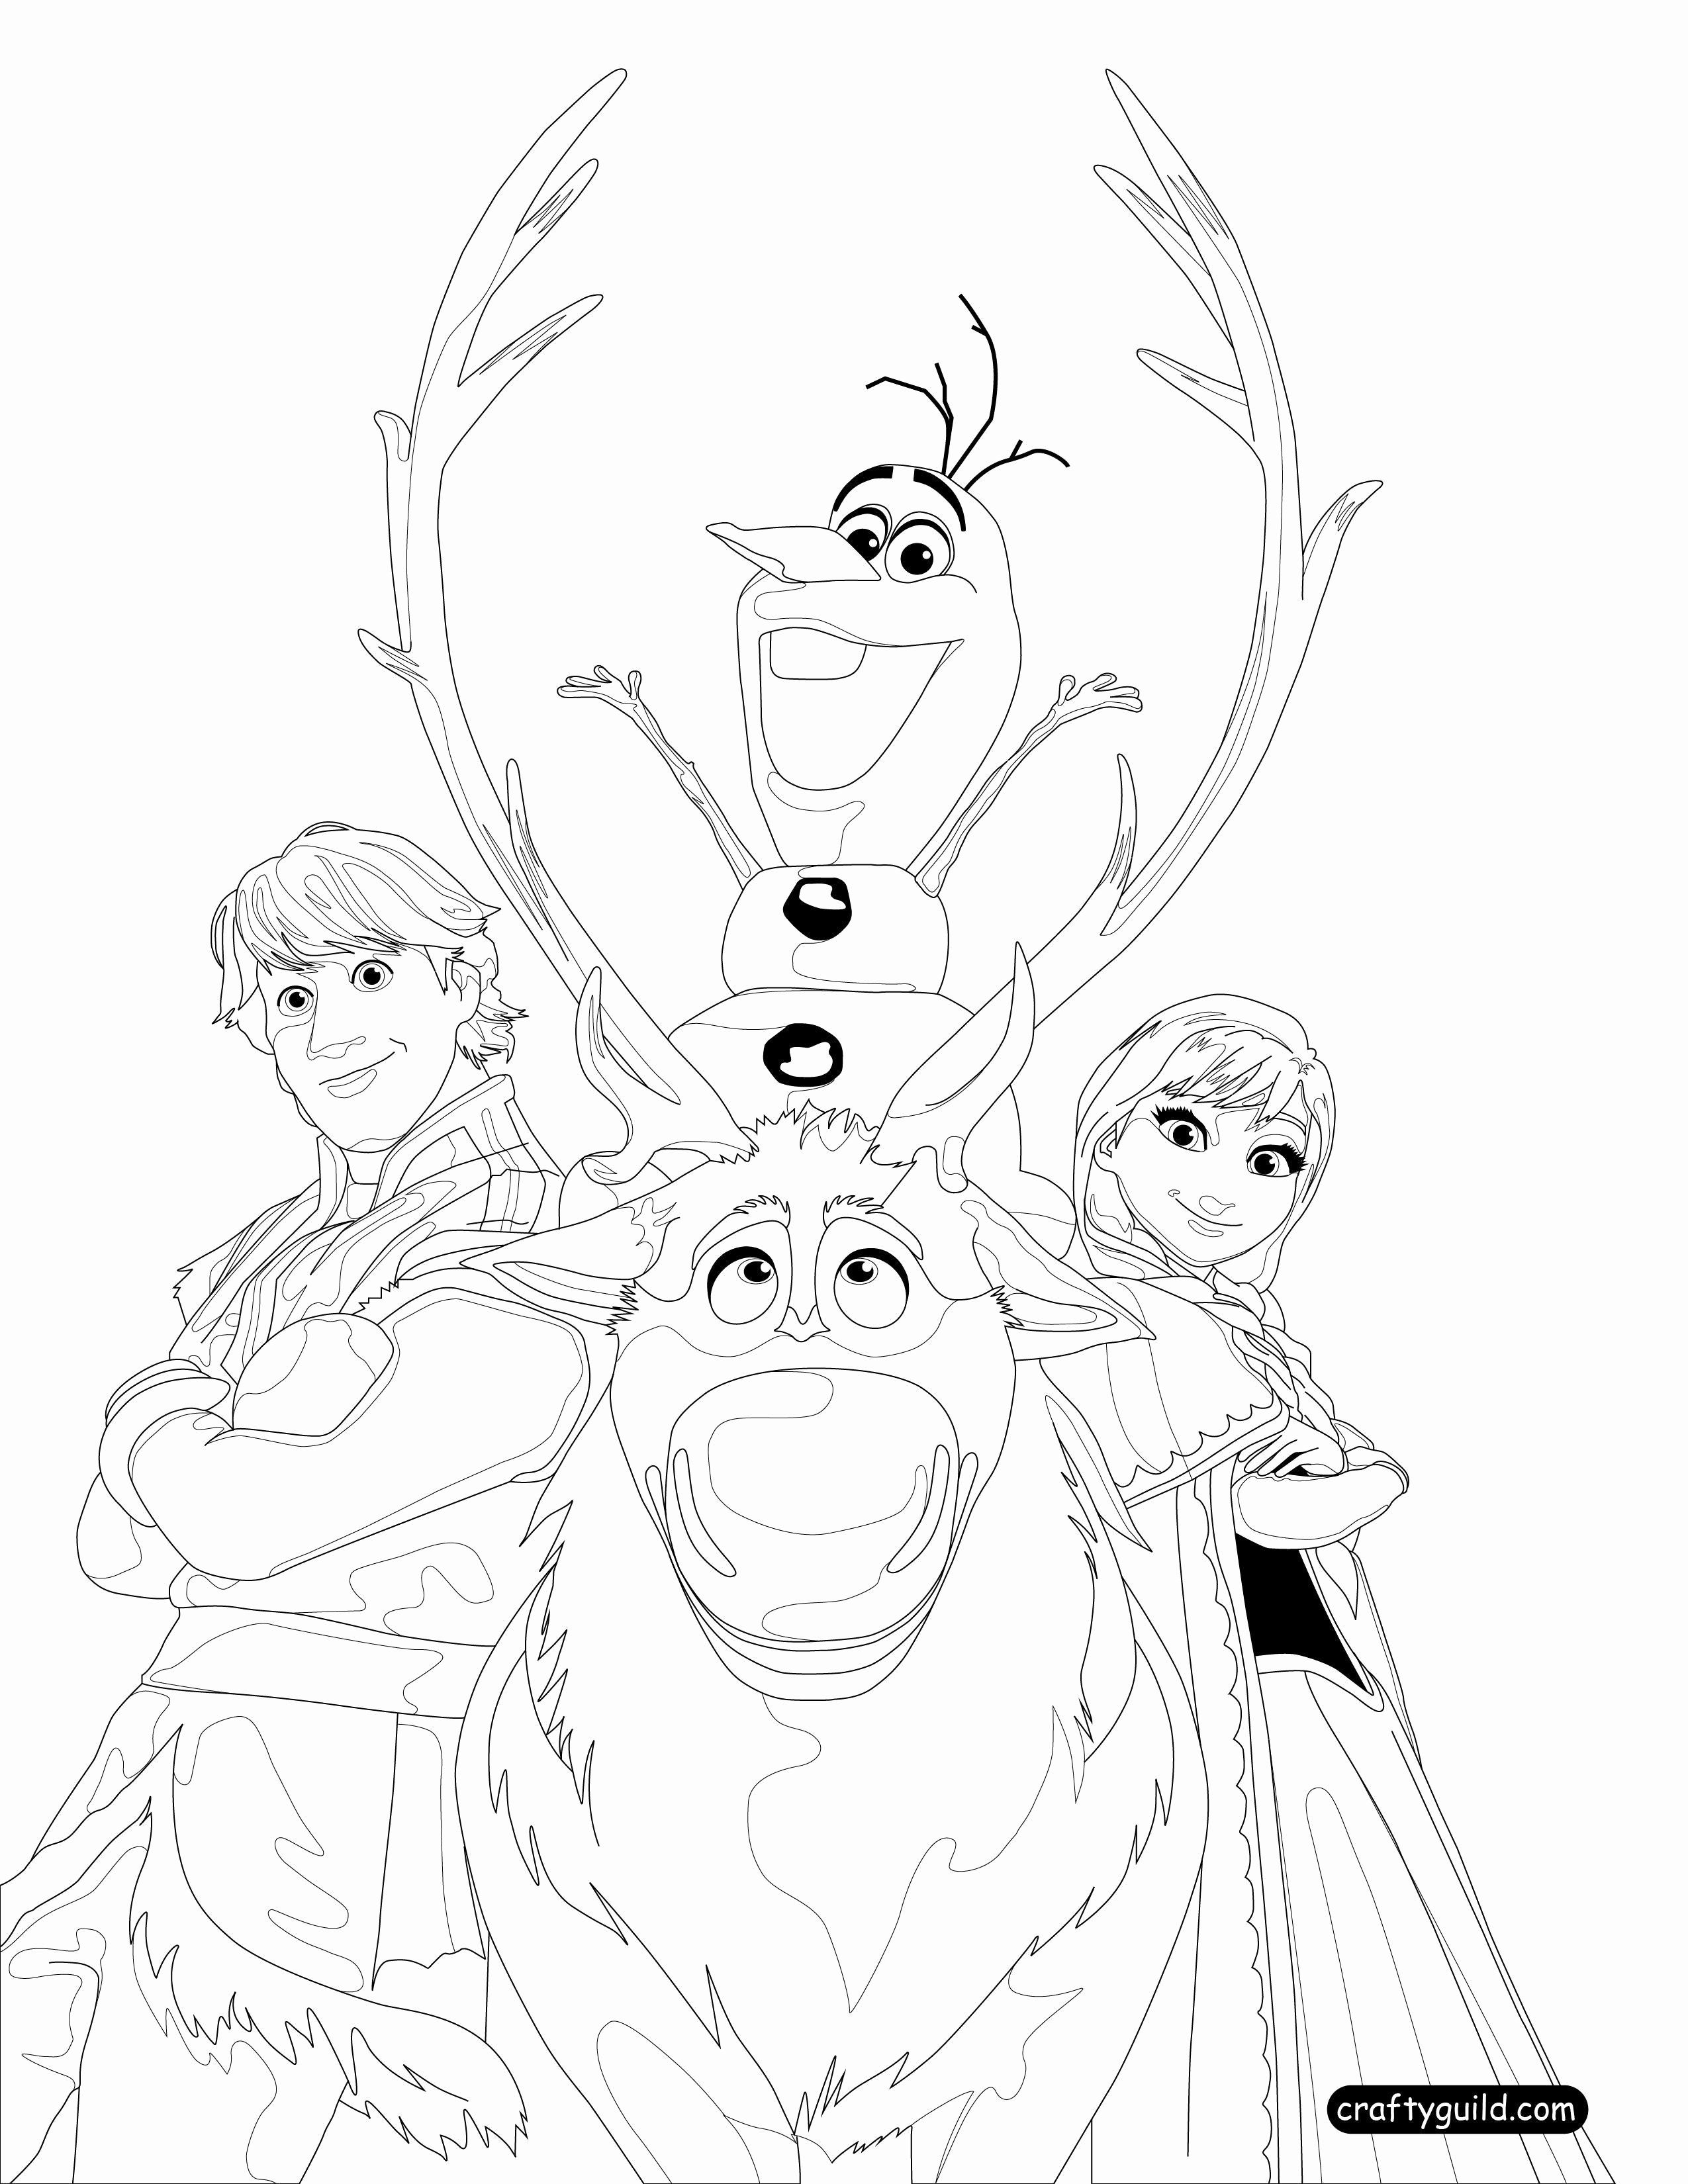 Disney On Ice Coloring Pages In 2020 Frozen Coloring Pages Coloring Pages Unicorn Coloring Pages